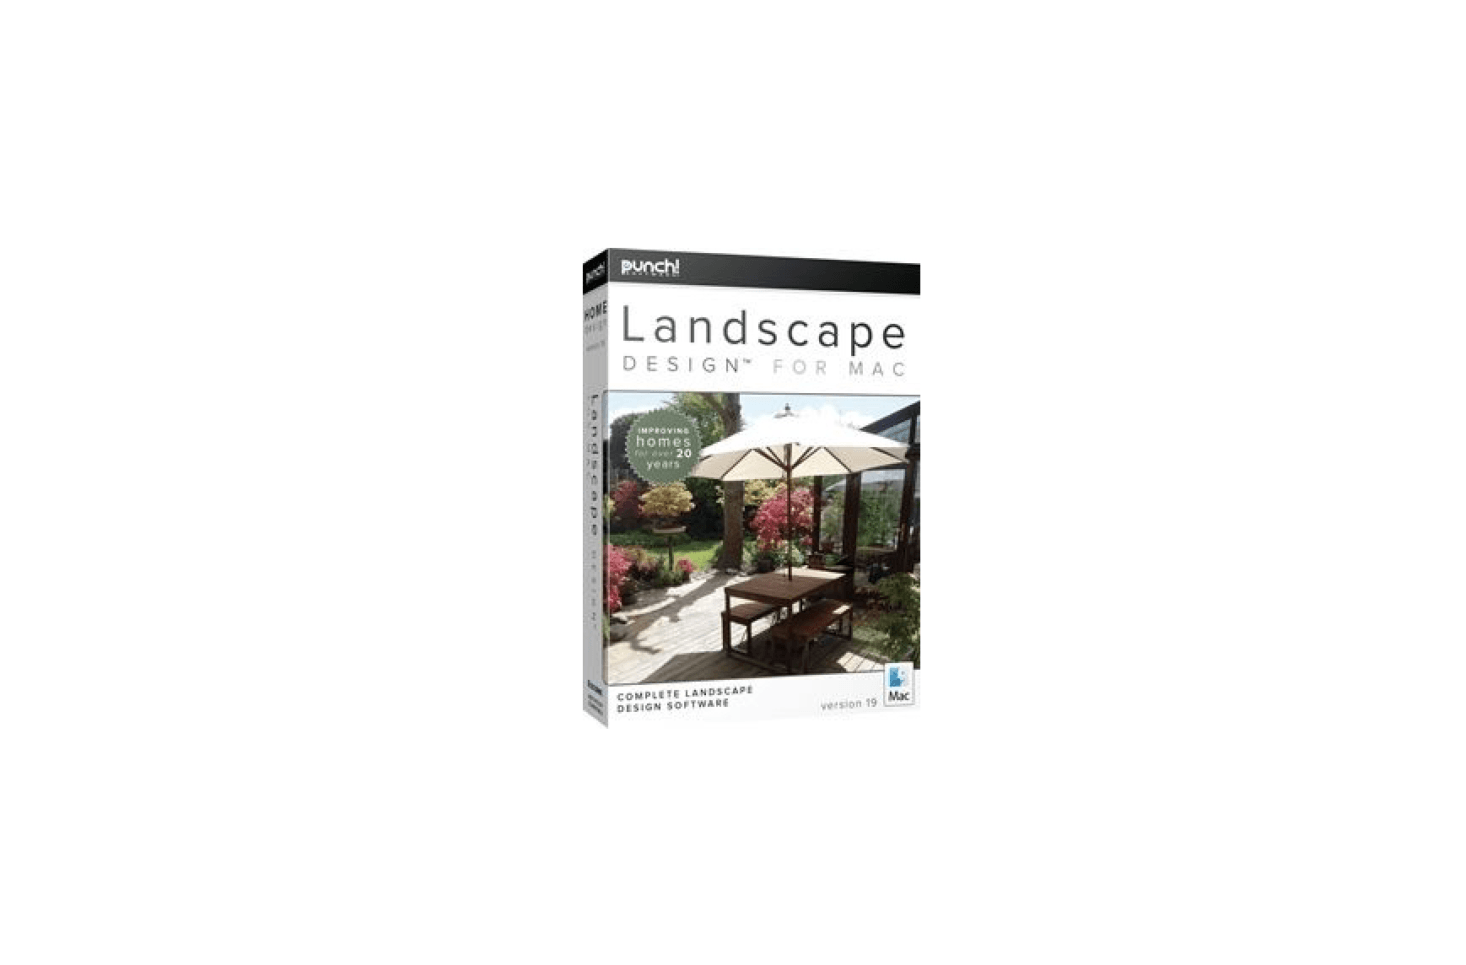 10 Best Landscape Design Software Programs of 2018 - Gardenista